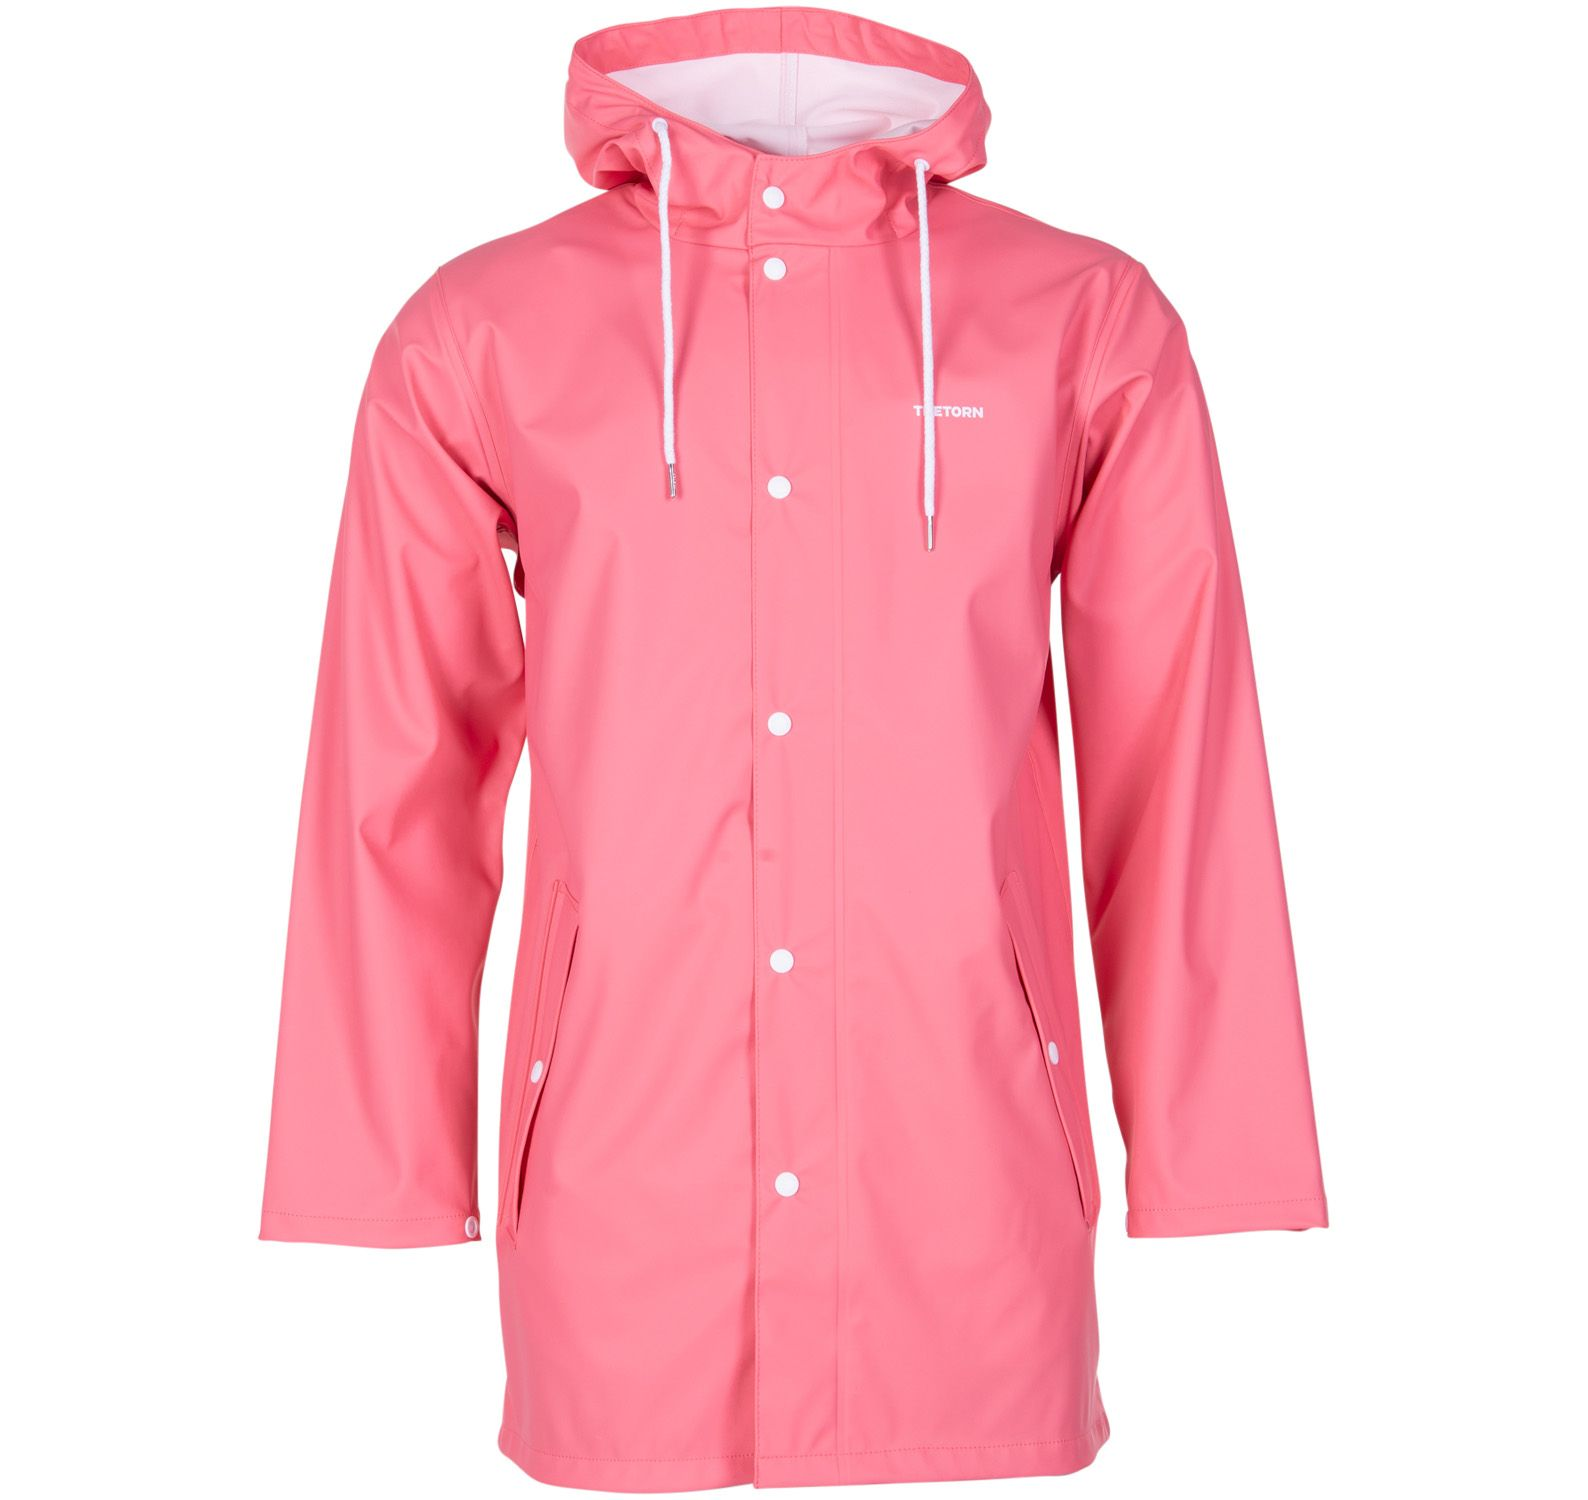 wings rainjacket, 098/coral, l, regnjackor